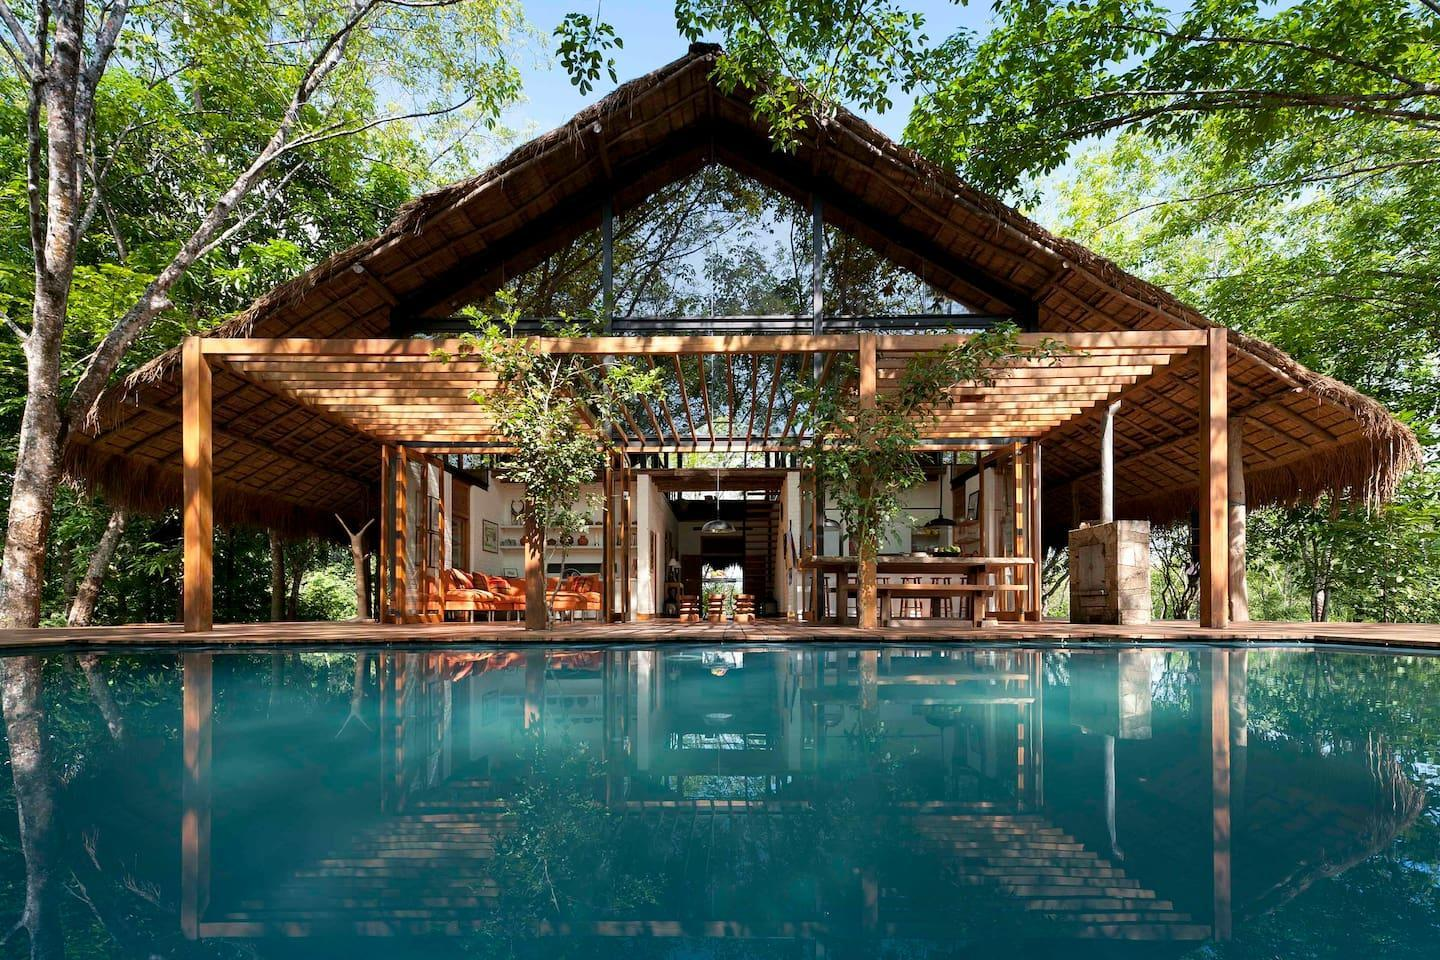 10 Incredible Airbnbs in Sri Lanka That You'll Never Want to Leave